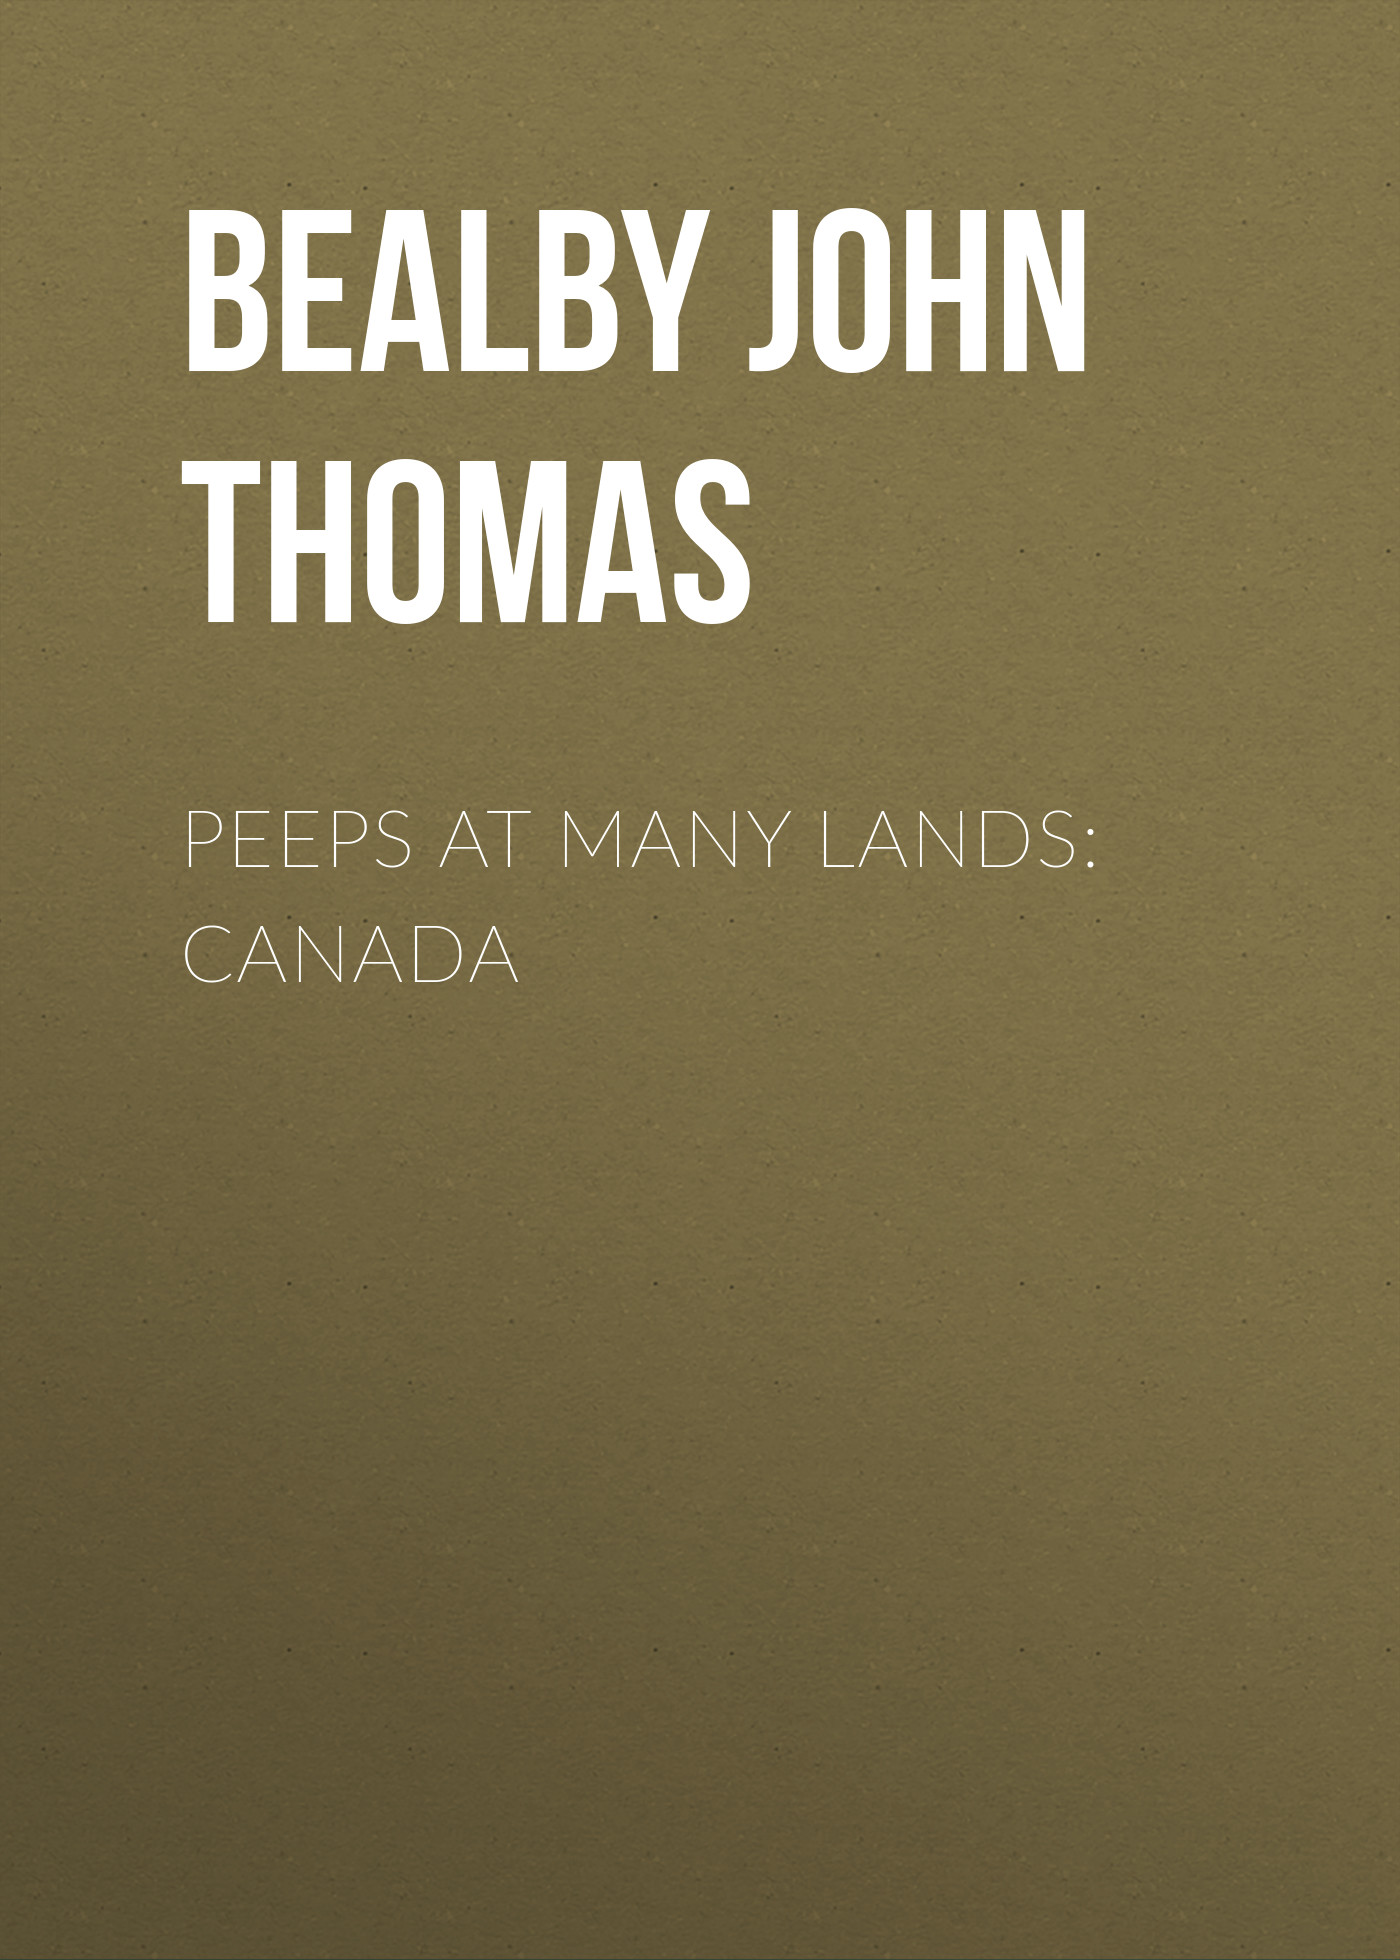 Bealby John Thomas Peeps at Many Lands: Canada sterling outer lands cloth